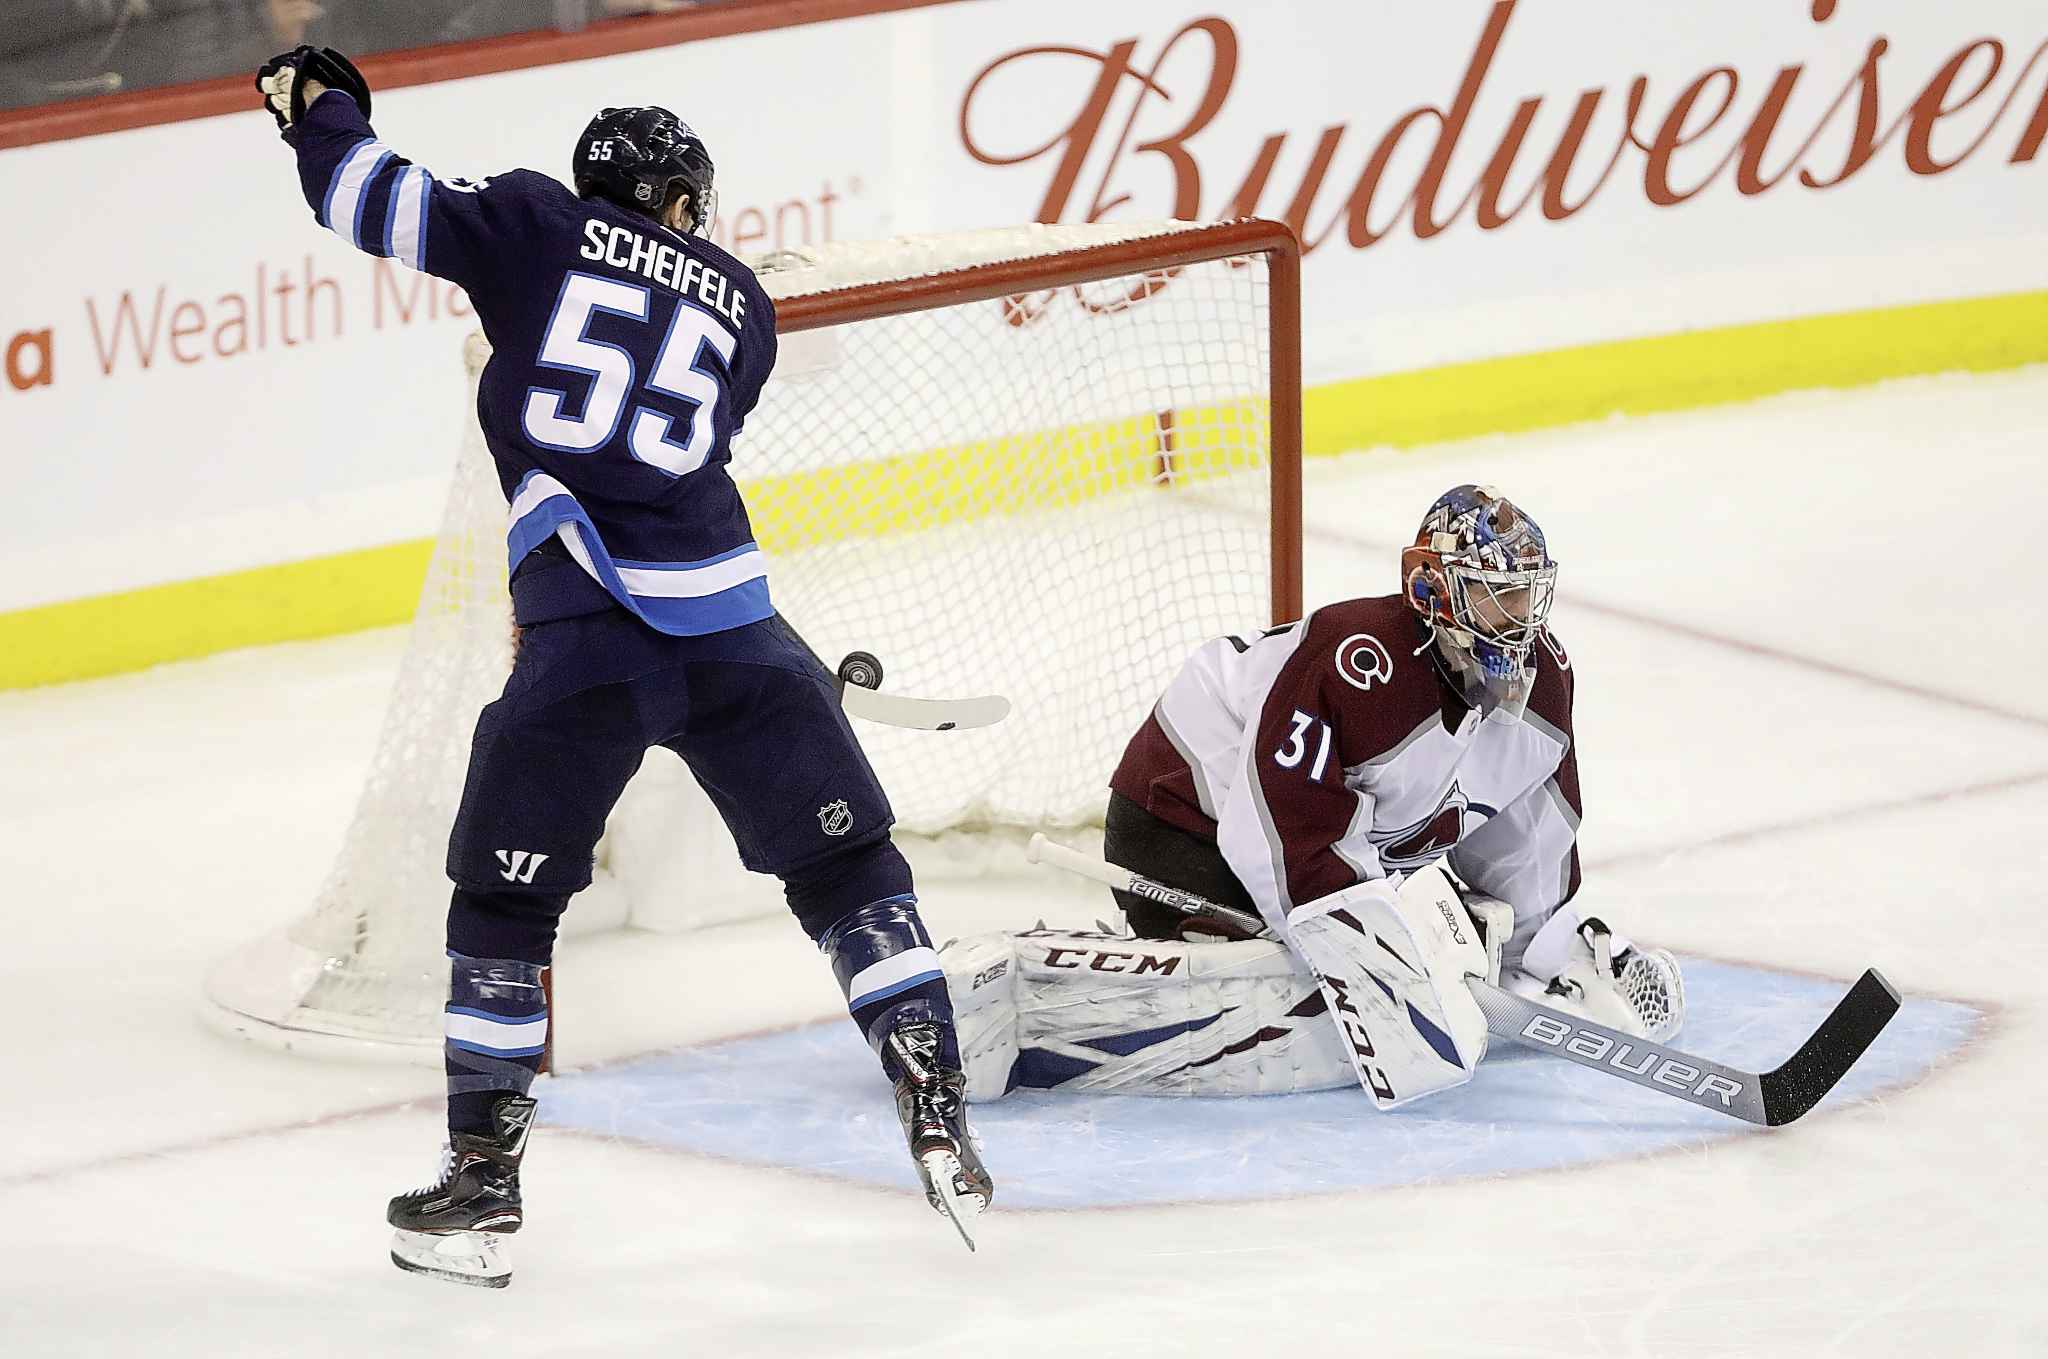 Winnipeg Jets' Mark Scheifele knocks his own rebound out of the air and into the back of the net behind Colorado Avalanche goaltender Philipp Grubauer during the third period Tuesday.